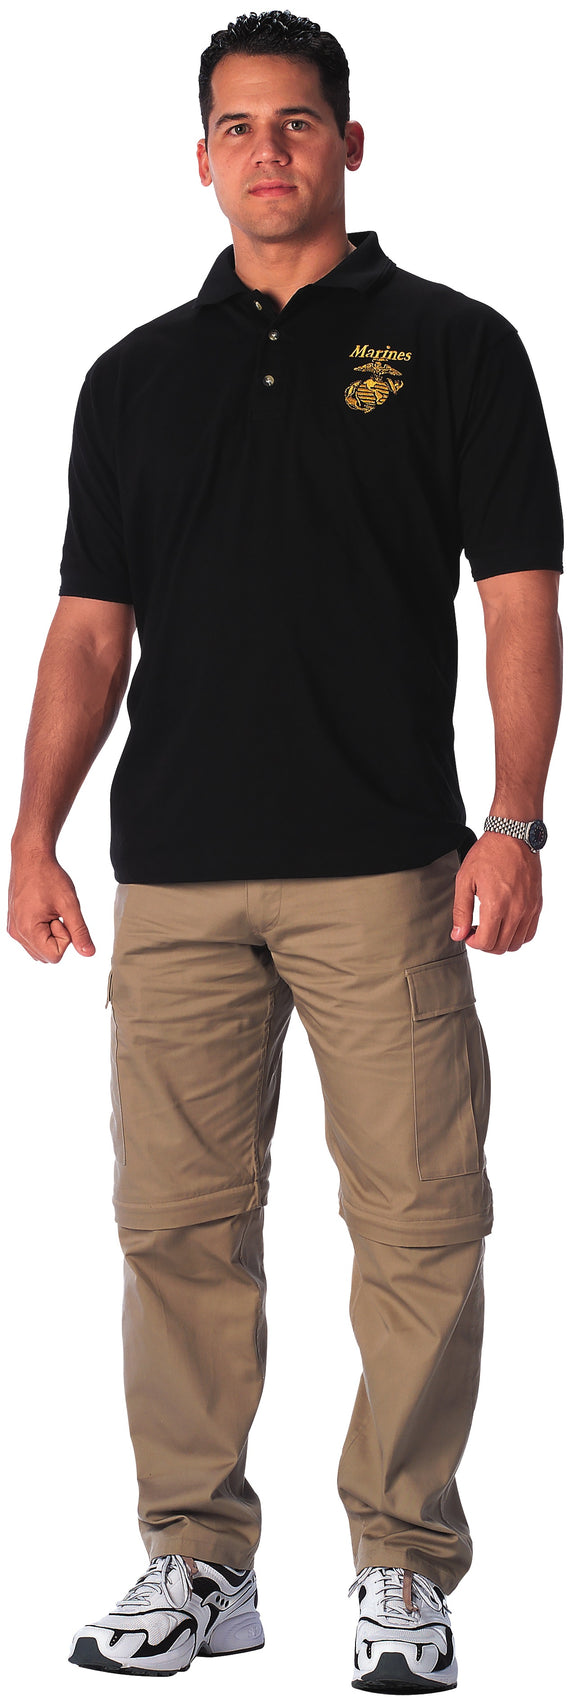 Rothco USMC Moisture Wicking Embroidered Black Polo